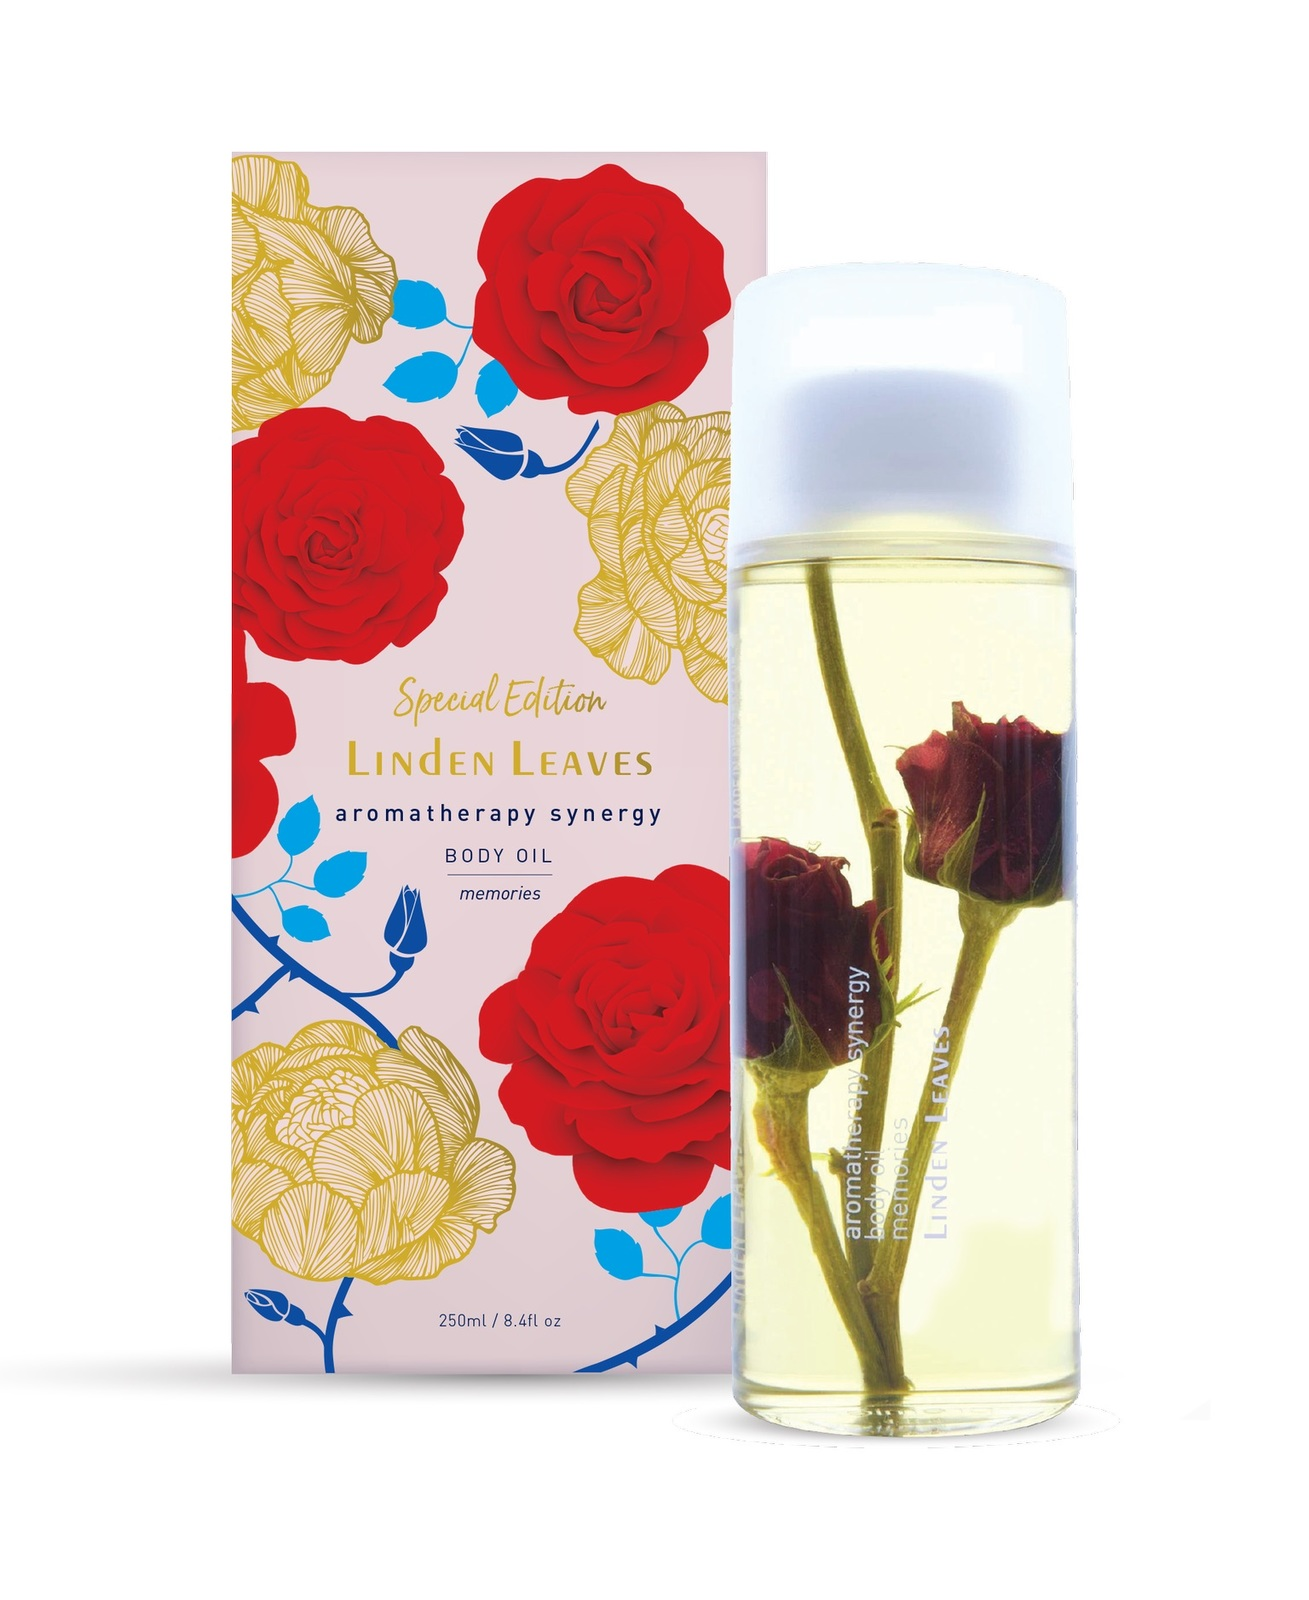 Linden Leaves Memories Body Oil - Special Edition (250ml) image